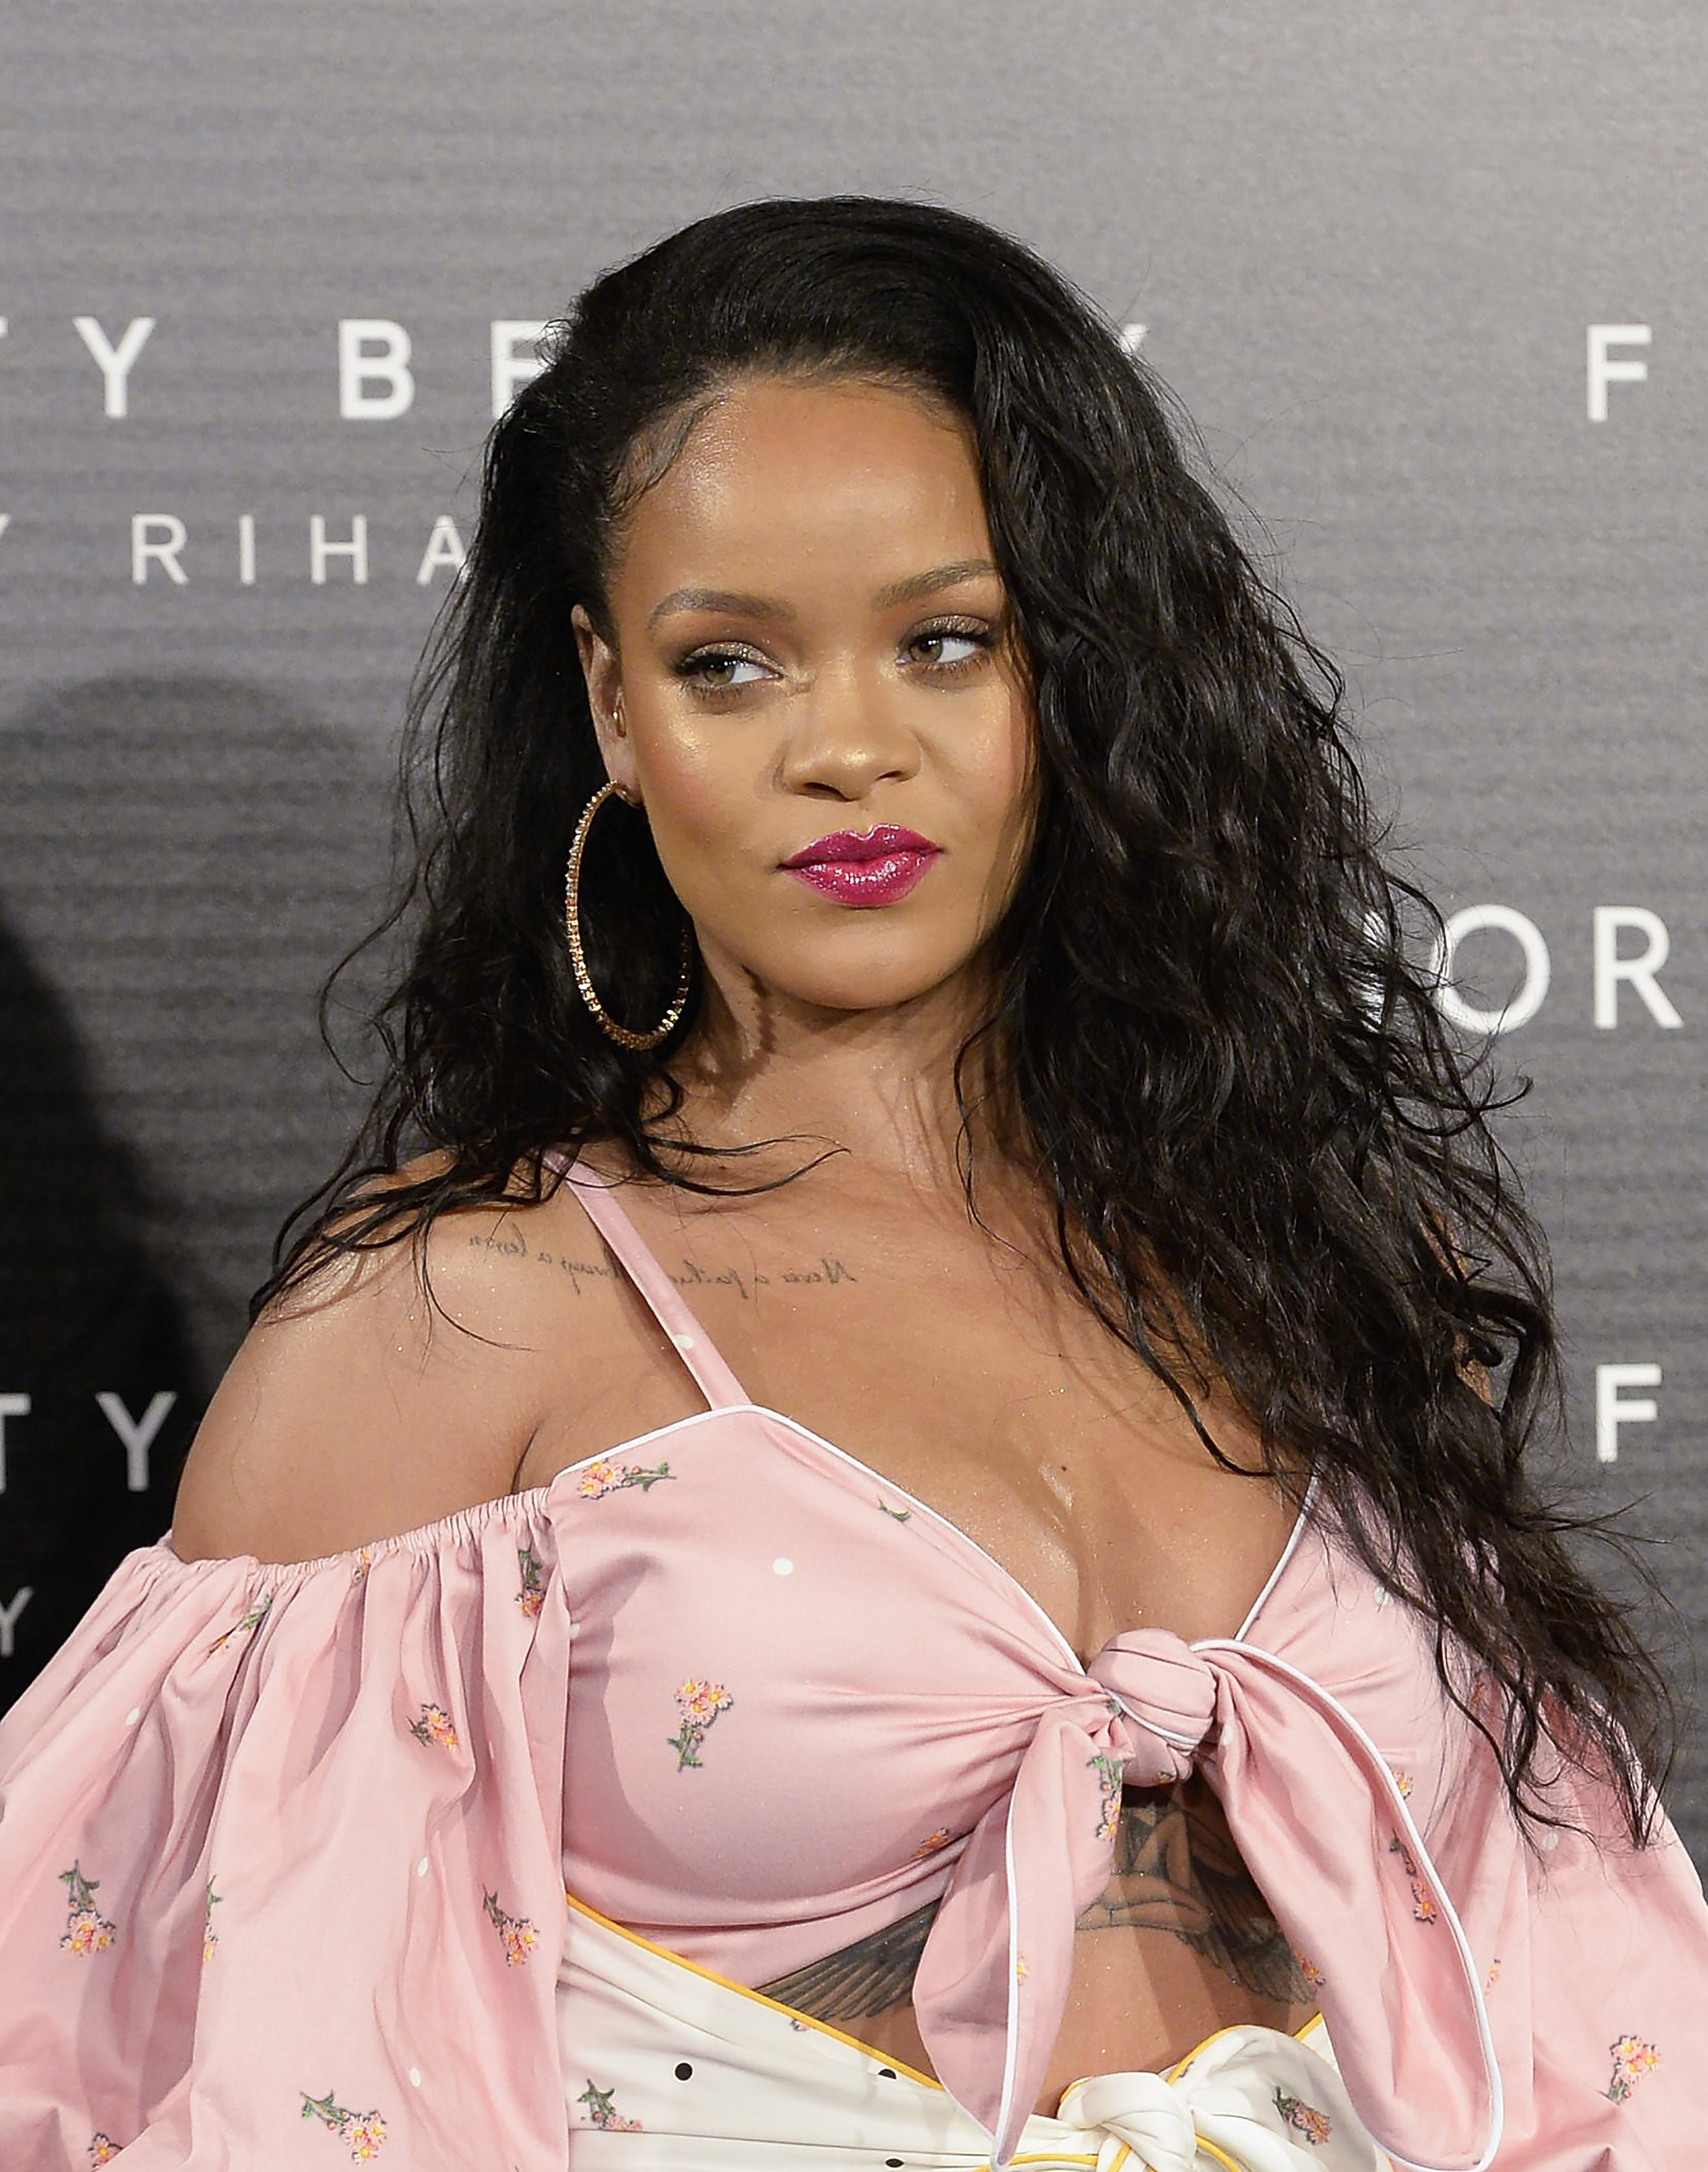 Rihanna Fenty Beauty Presentation in Madrid